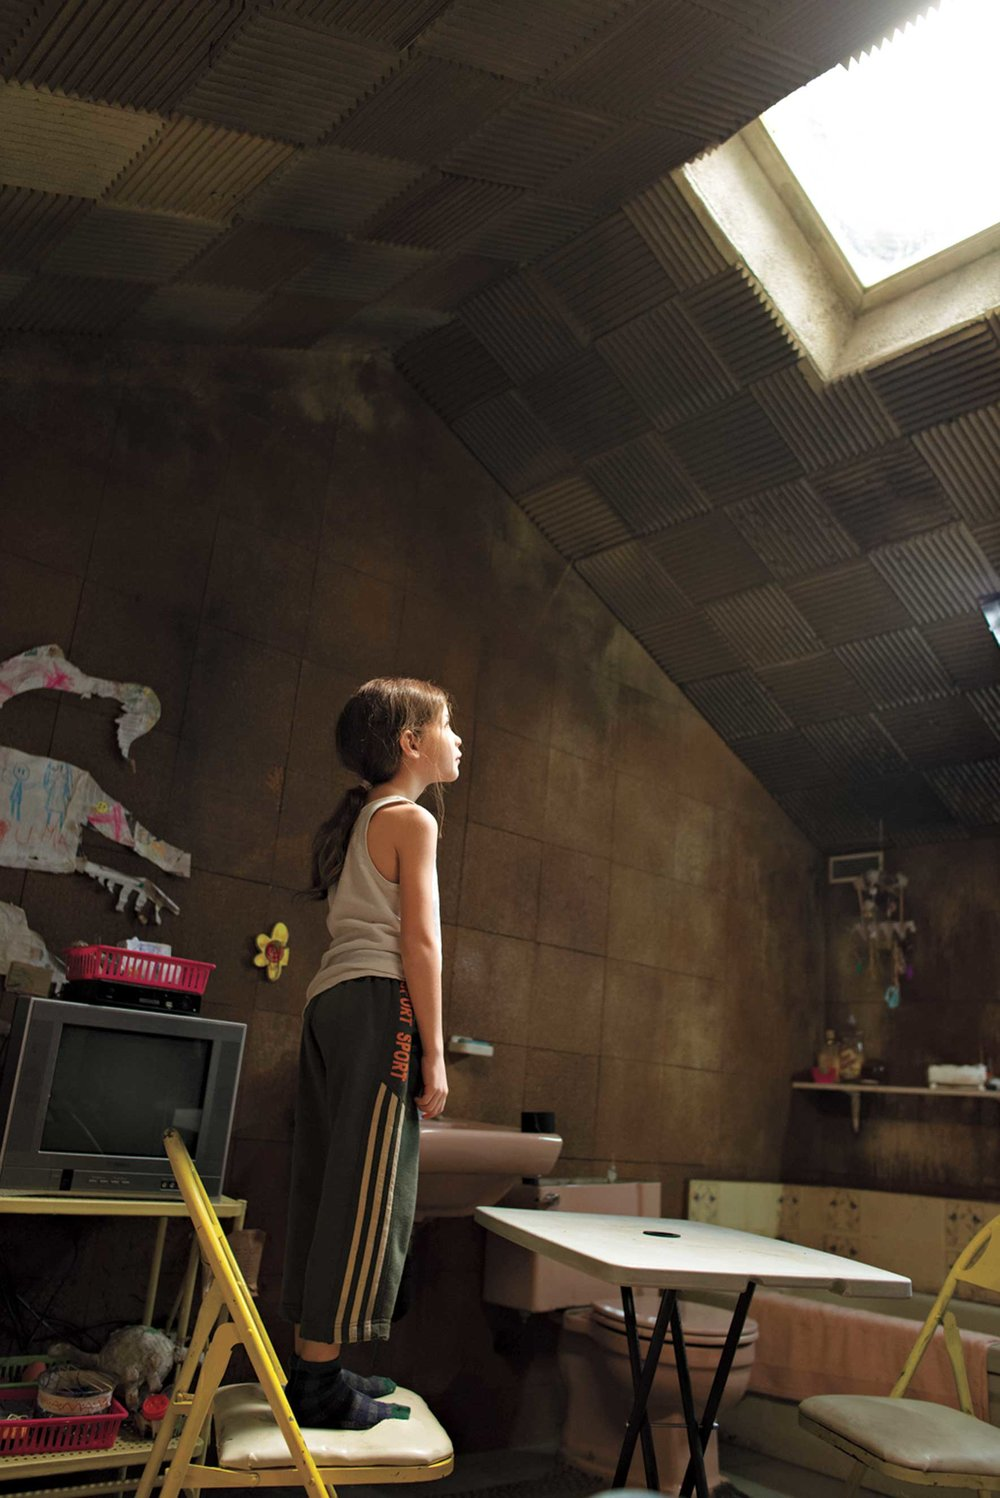 room-brie-larson-jacob-tremblay.jpg